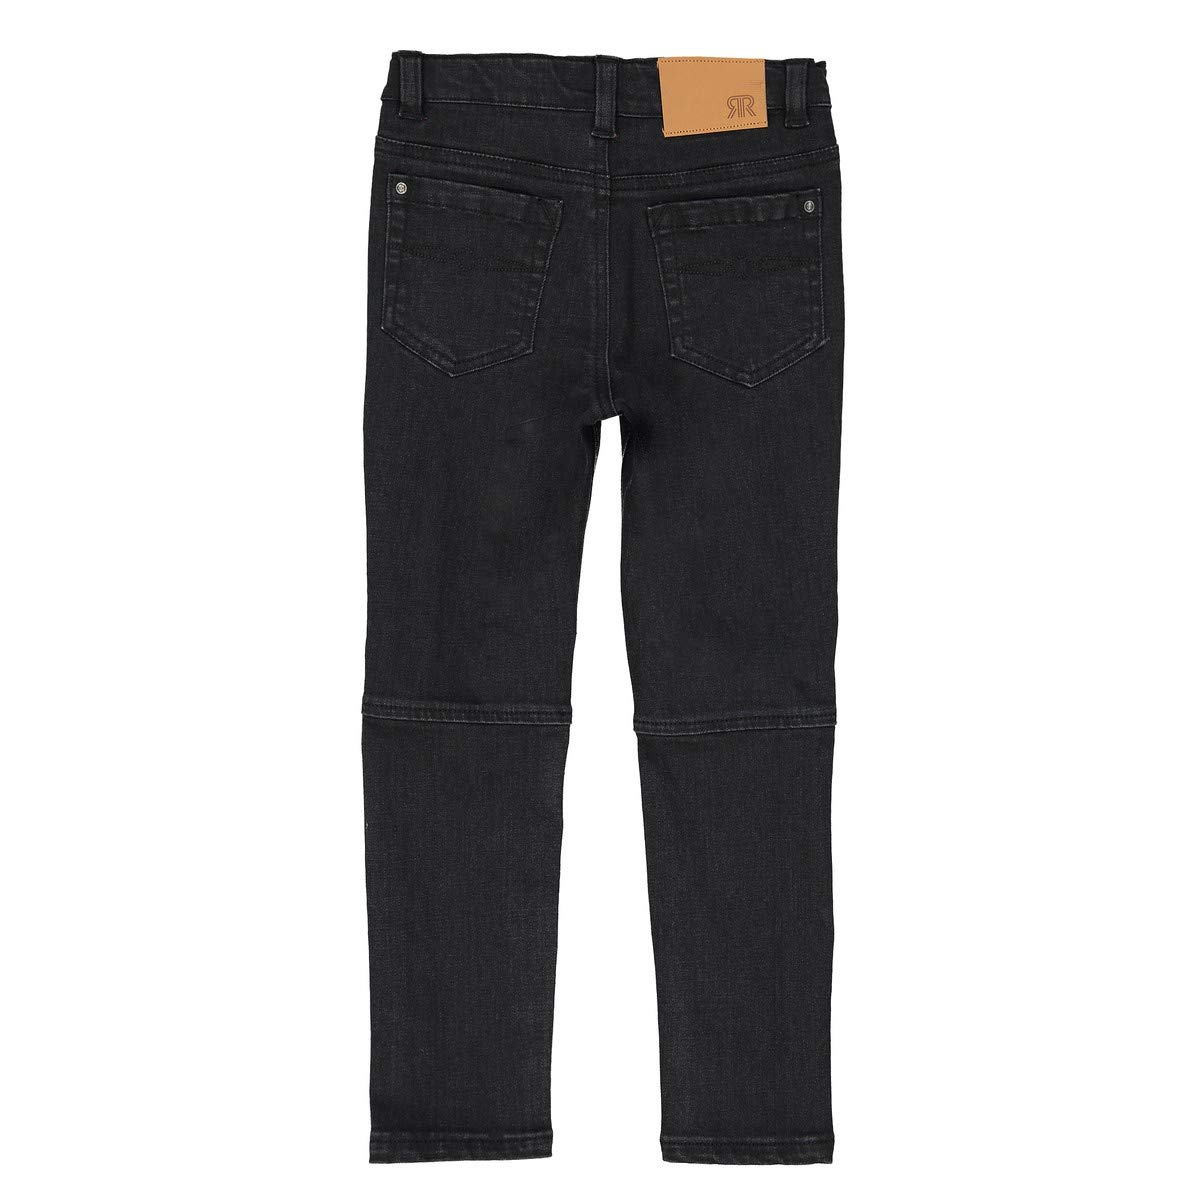 La Redoute Collections Big Boys Super Tough Slim Fit Jeans 3-12 Years Black Size 10 Years 54 in.